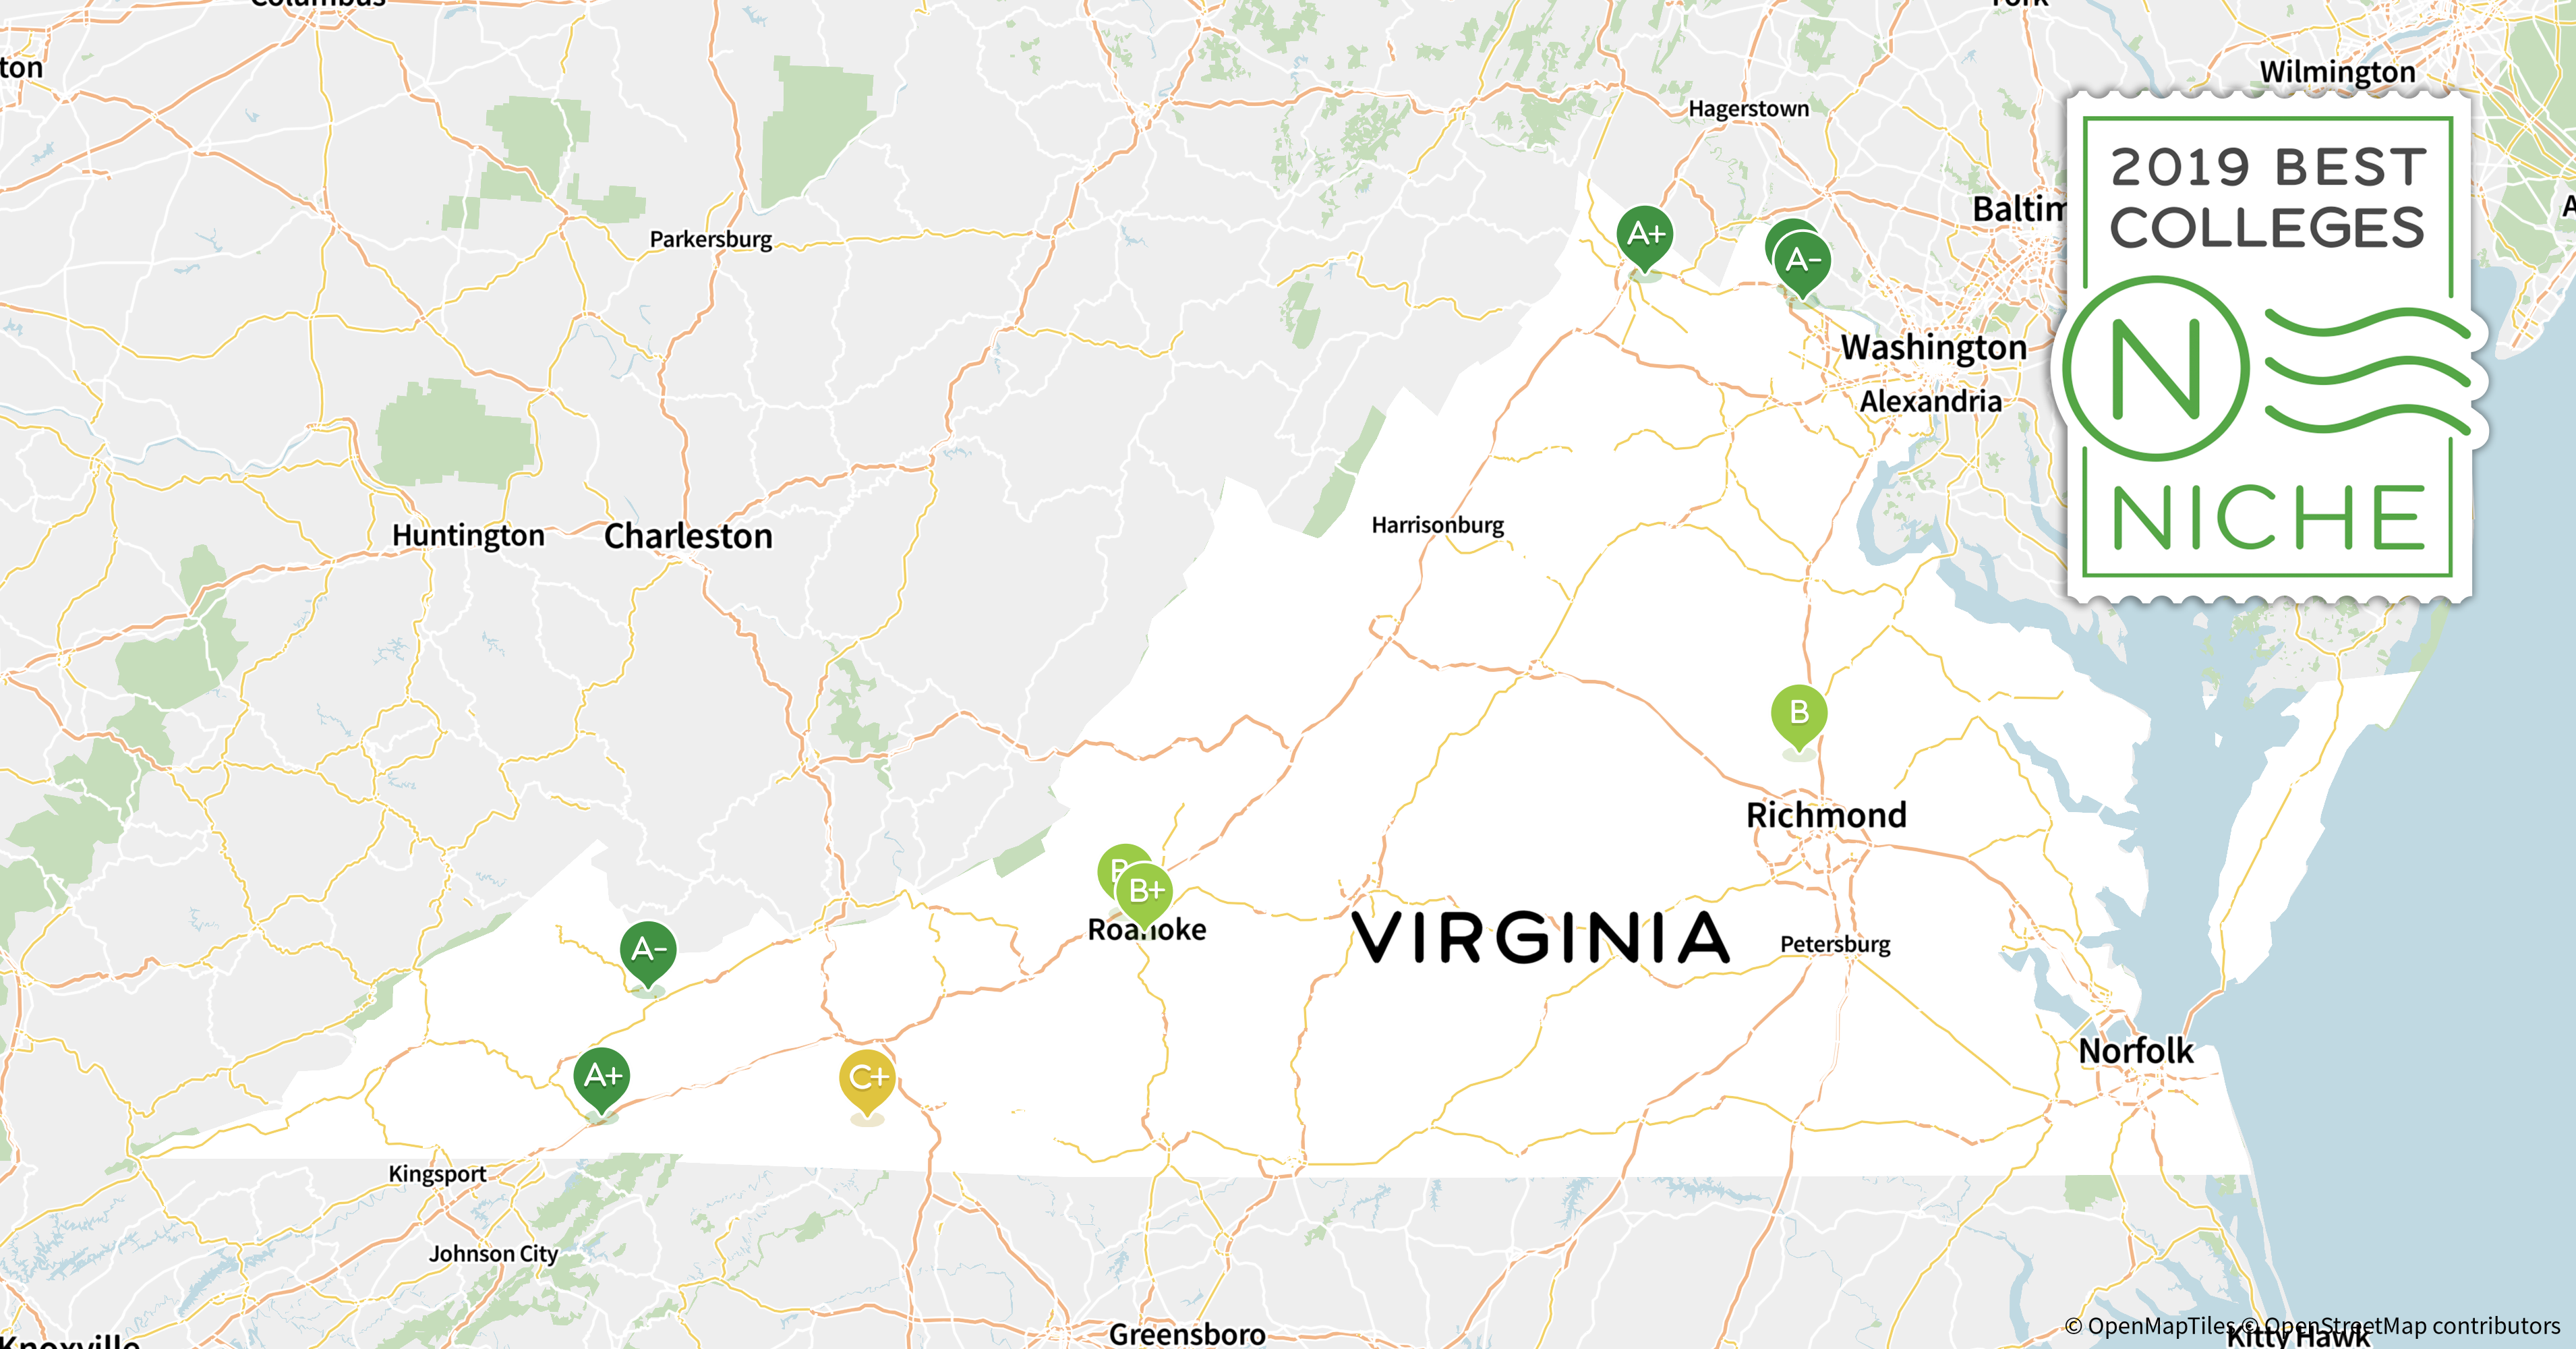 Norfolk State Campus Map.2019 Top Public Universities In Virginia Niche